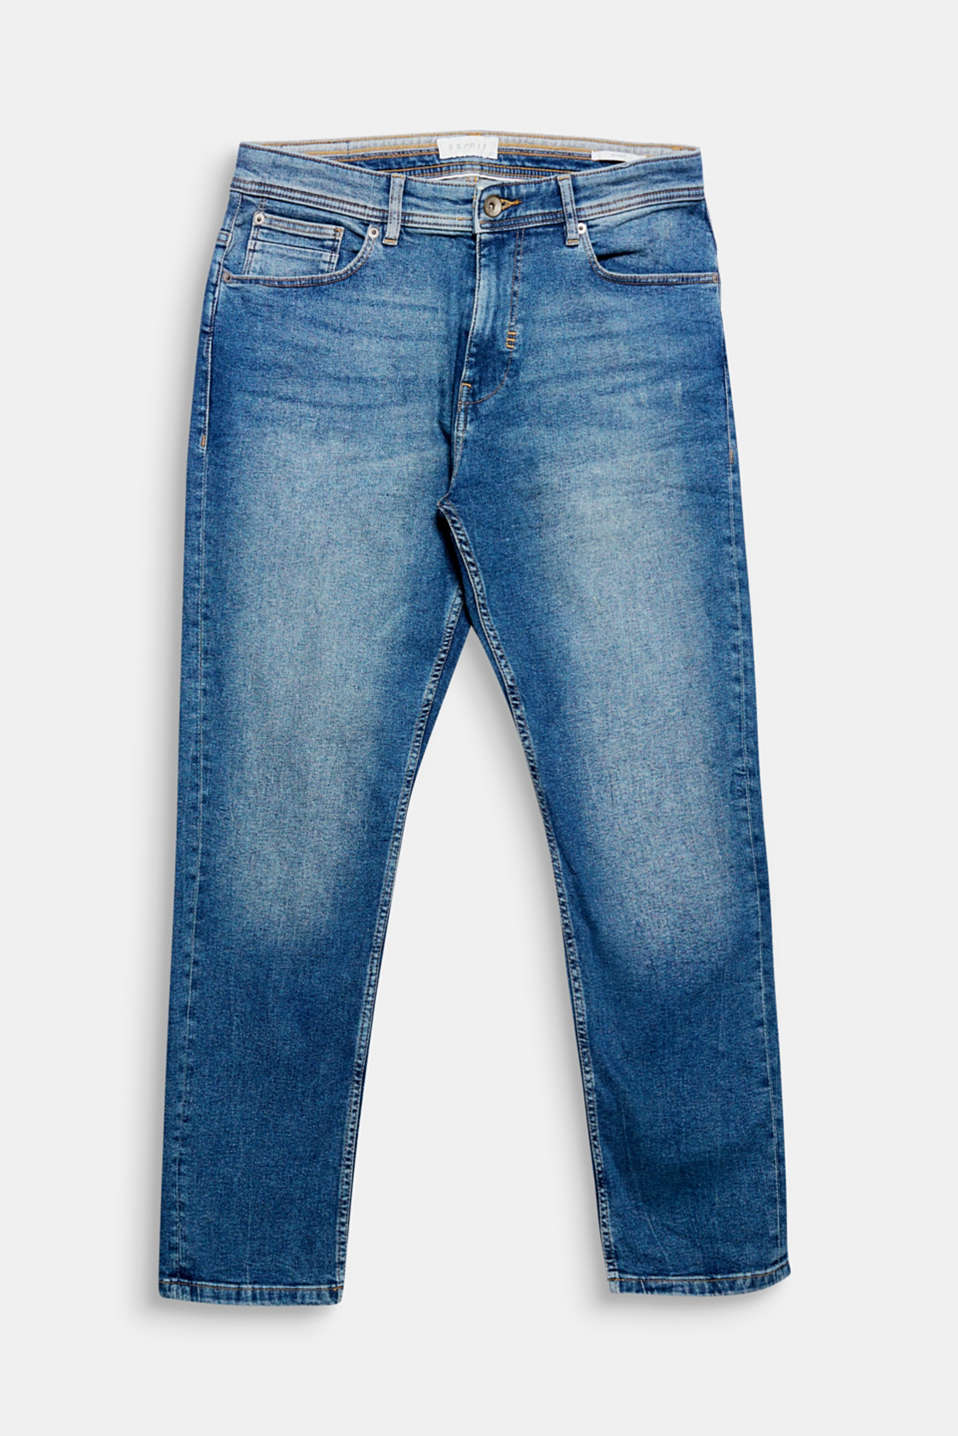 We love Denim! Bleached and Used - stylische Effekte, die diese 5-Pocket-Jeans zum urbanen Hingucker machen.